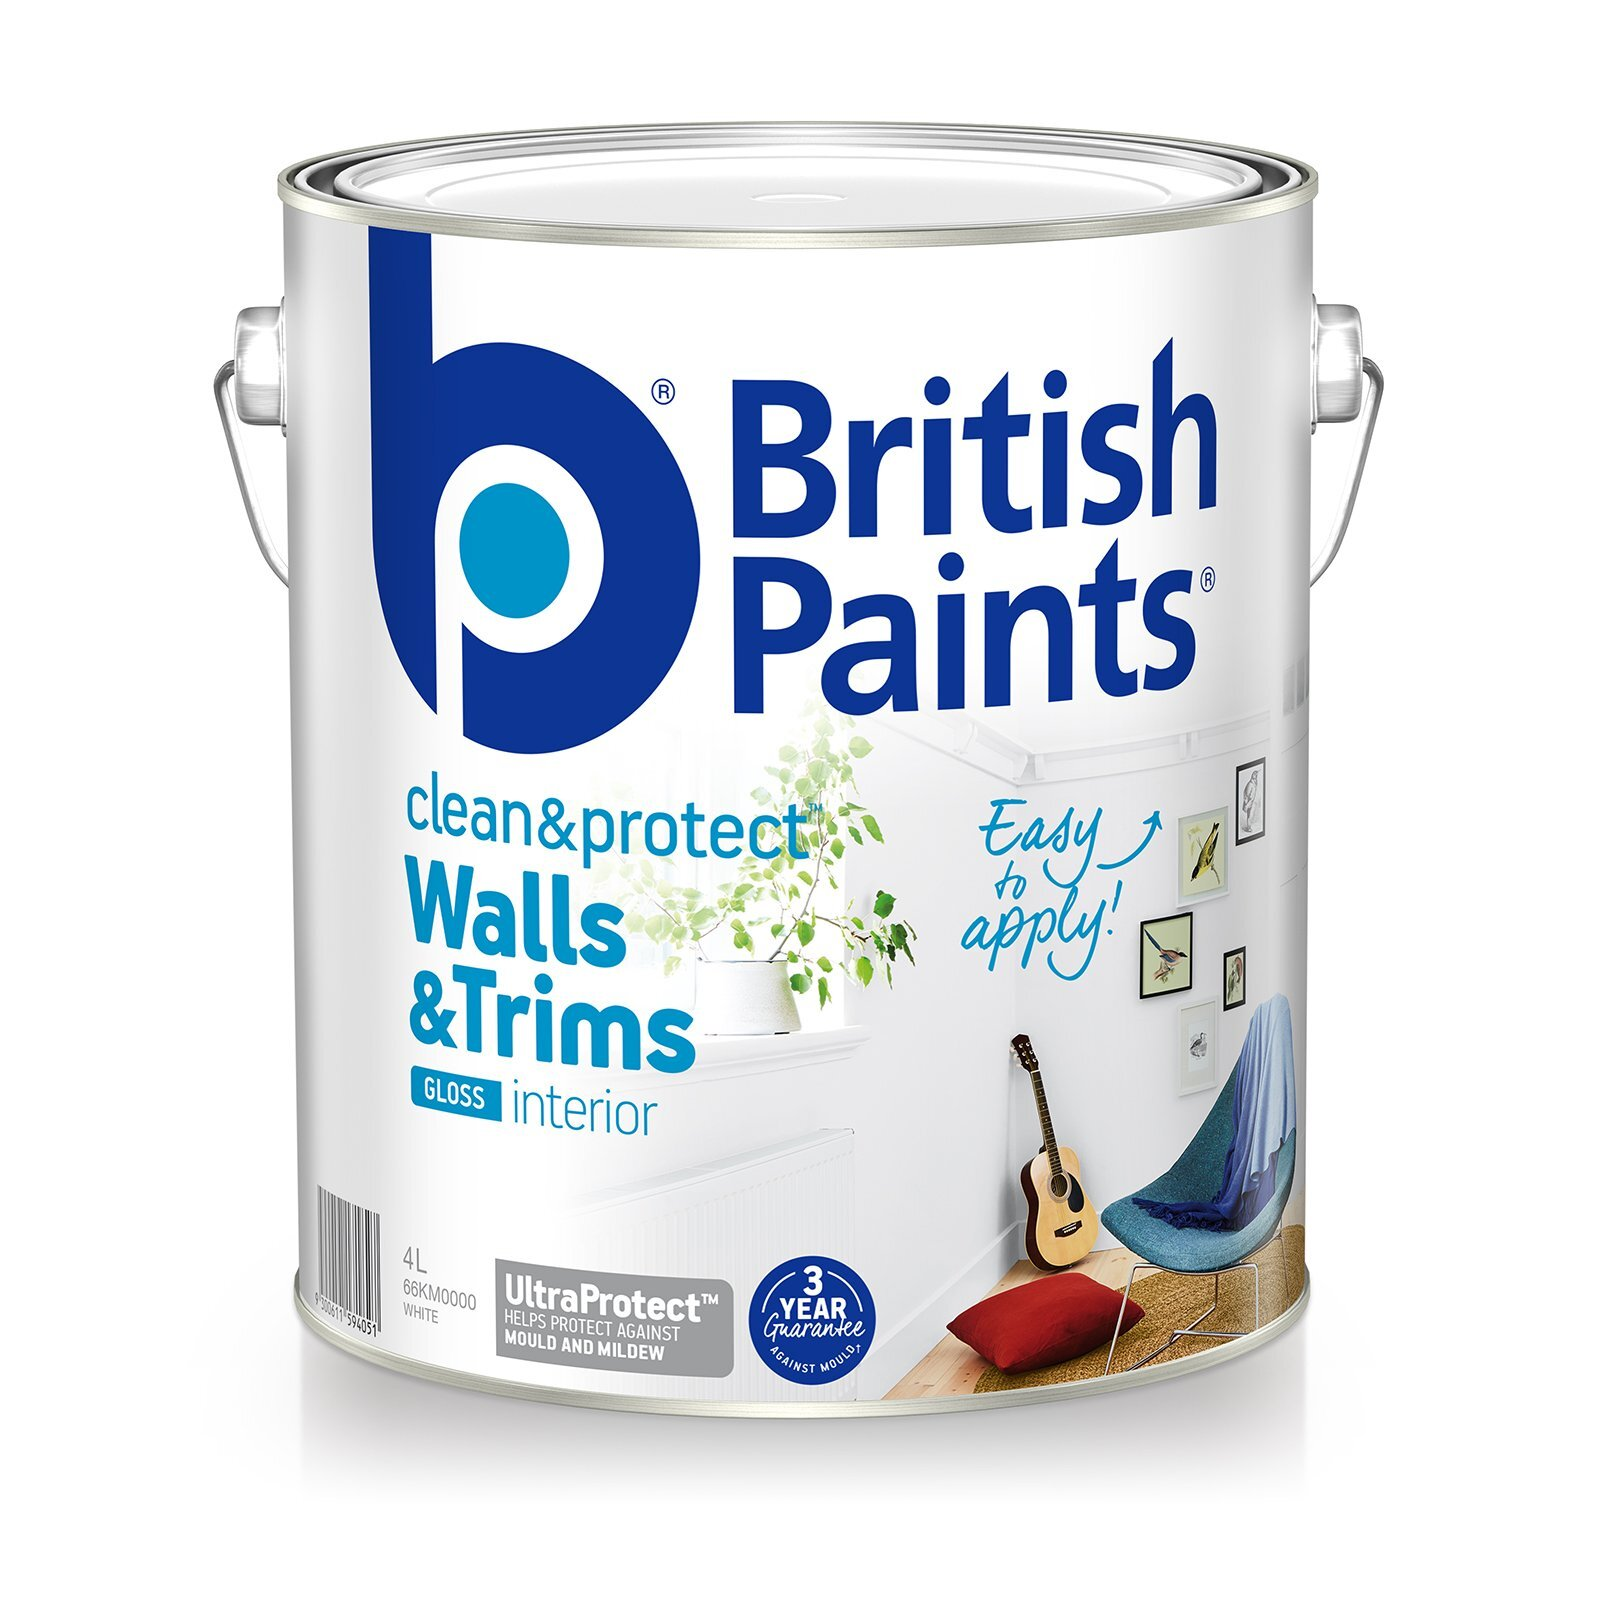 British Paints 4L White Clean & Protect Gloss Interior Paint